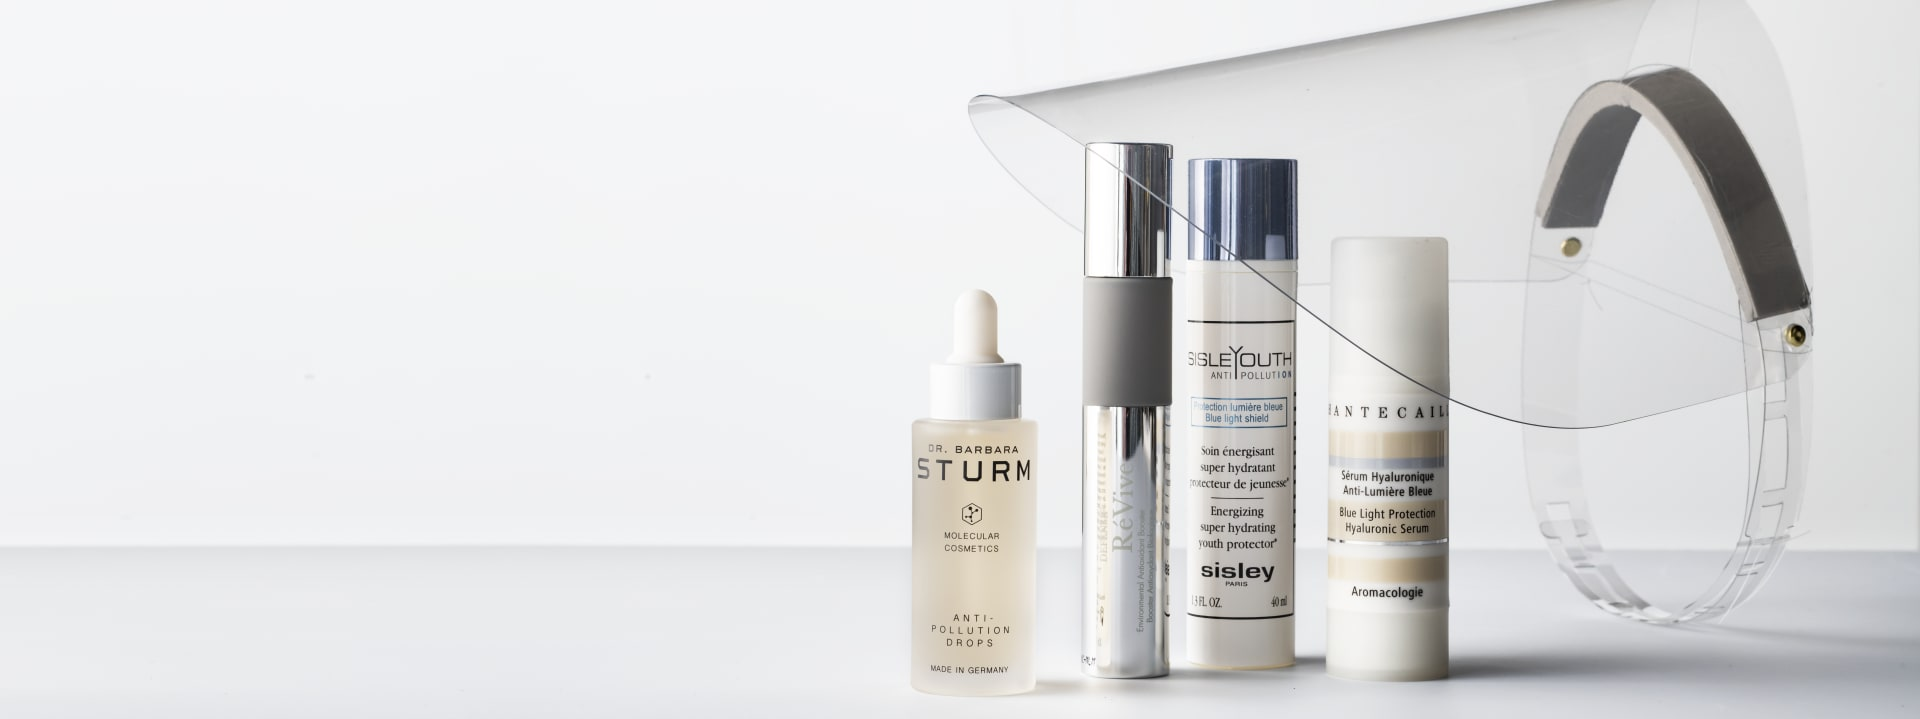 Your Skin And Screen Time | Shop Skin Care